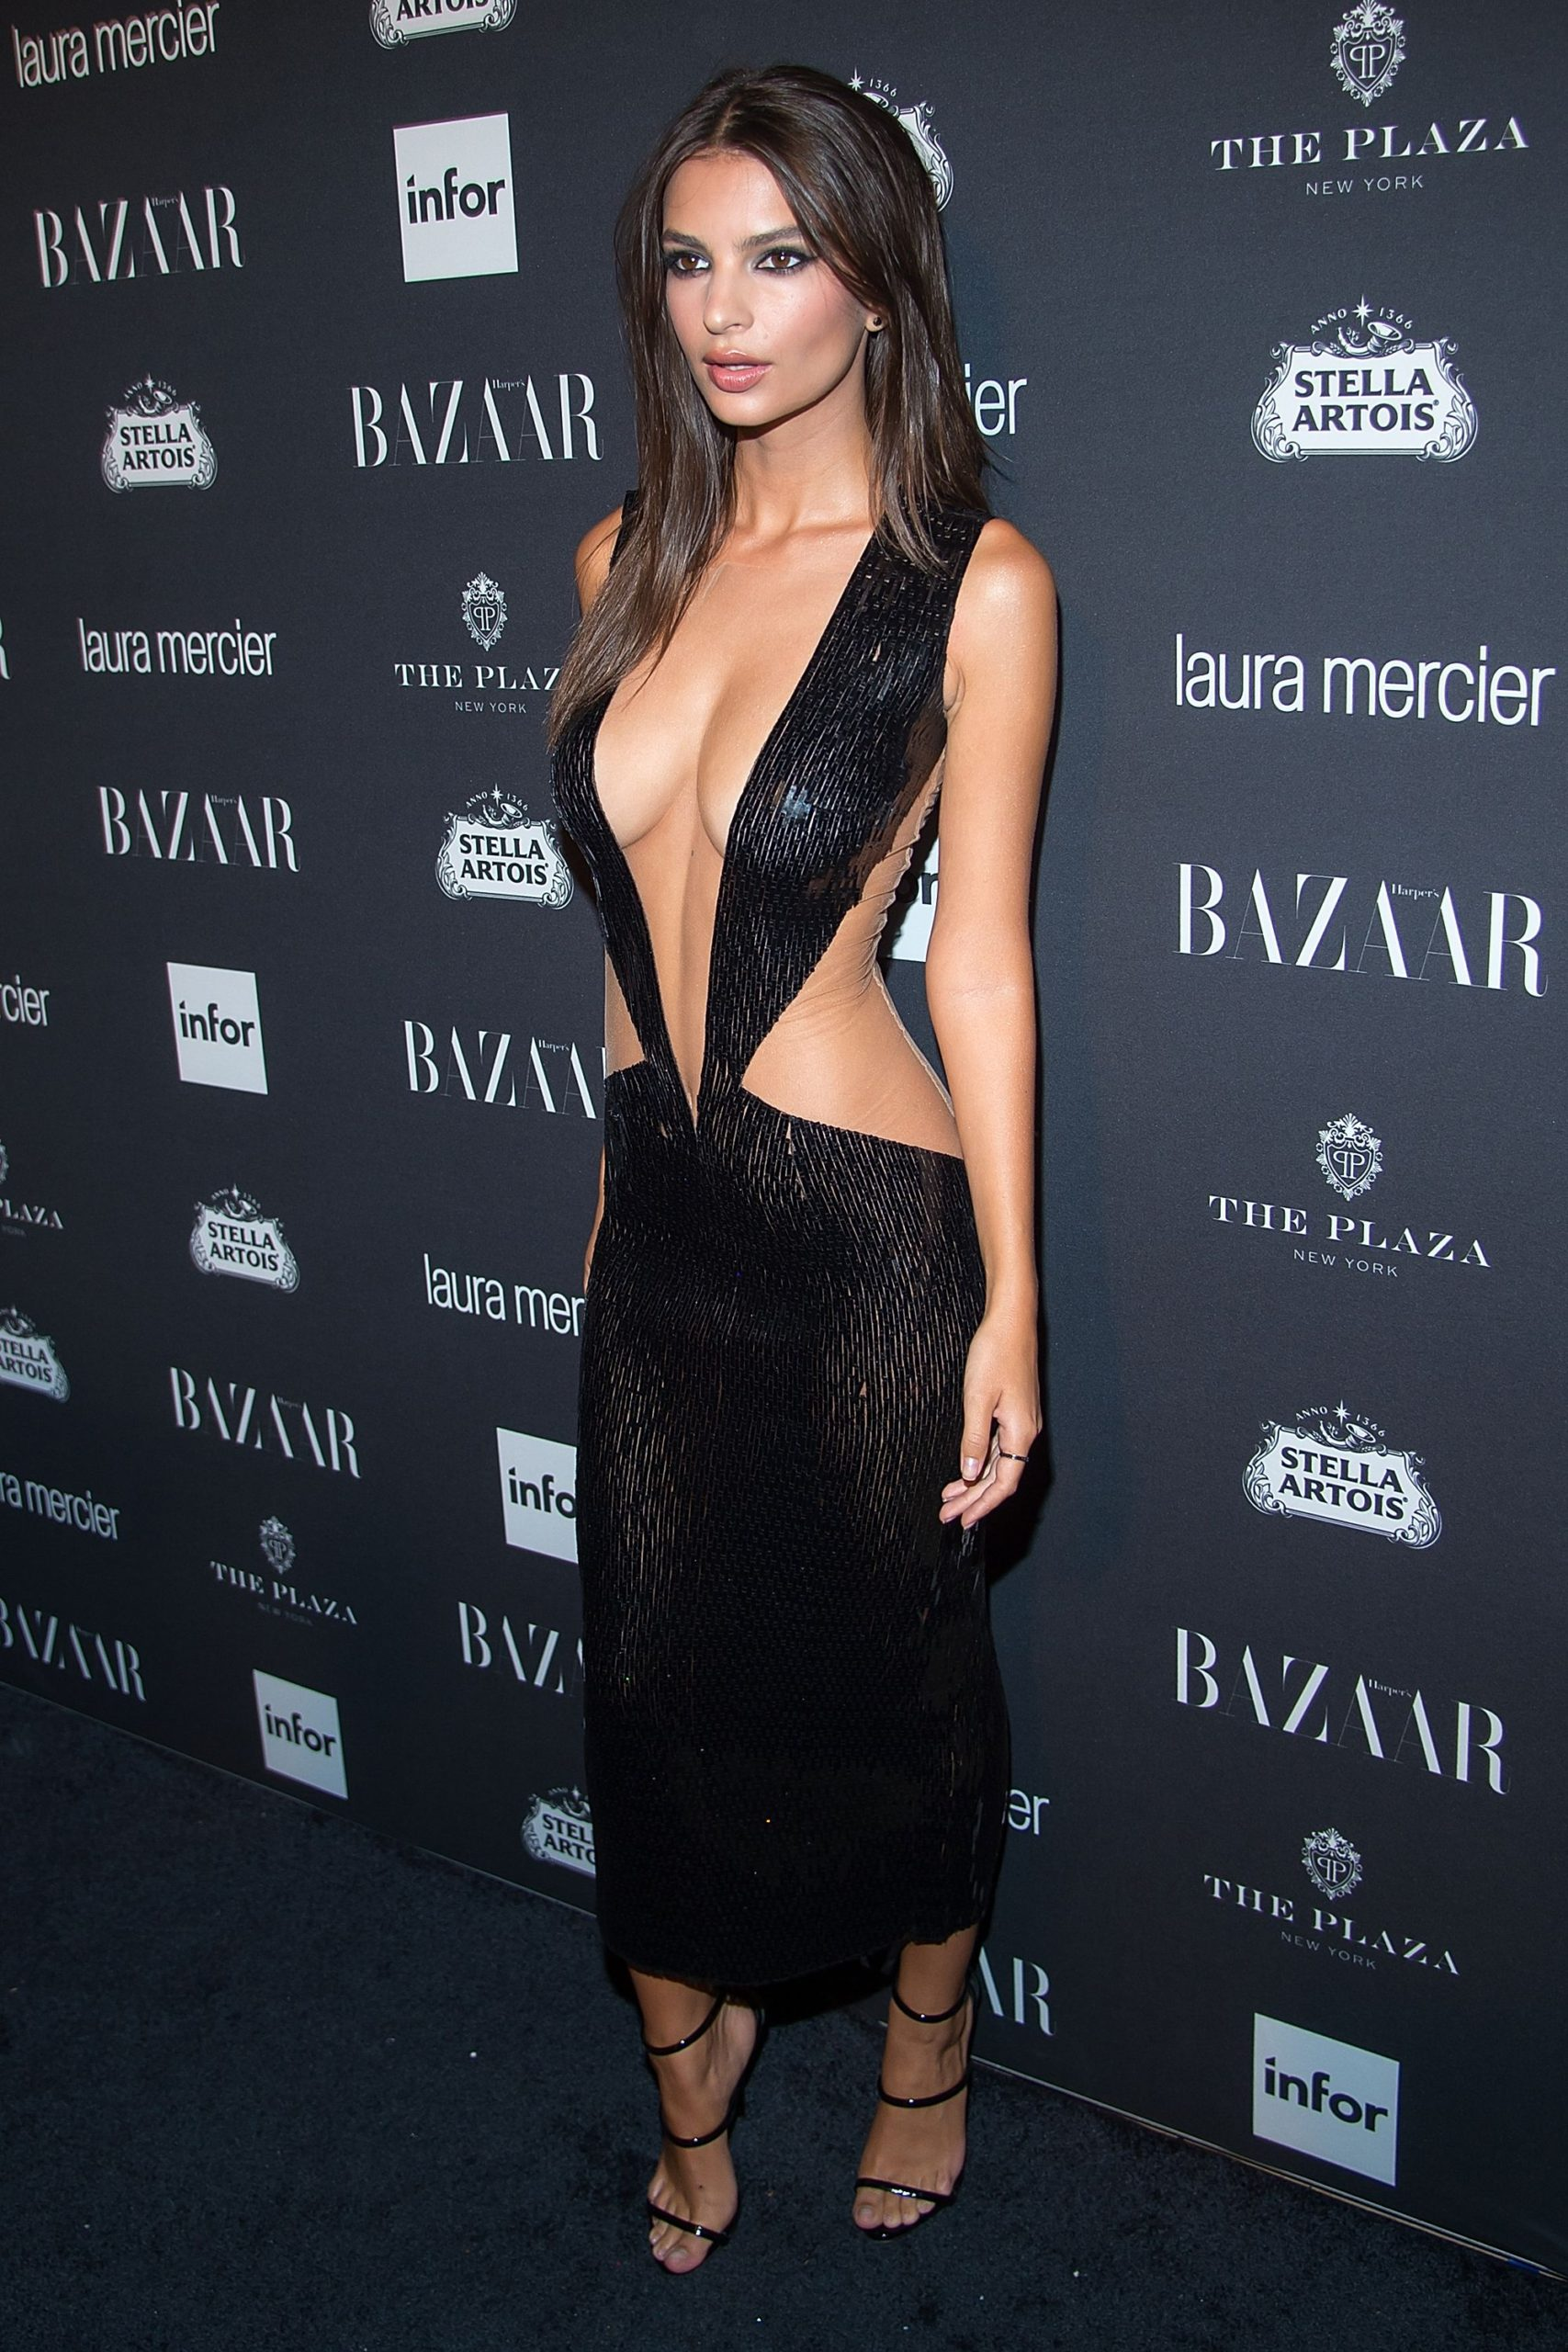 Emily Ratajkowski Black Night Dress Image scaled - Emily Ratajkowski Net Worth, Pics, Wallpapers, Career and Biography